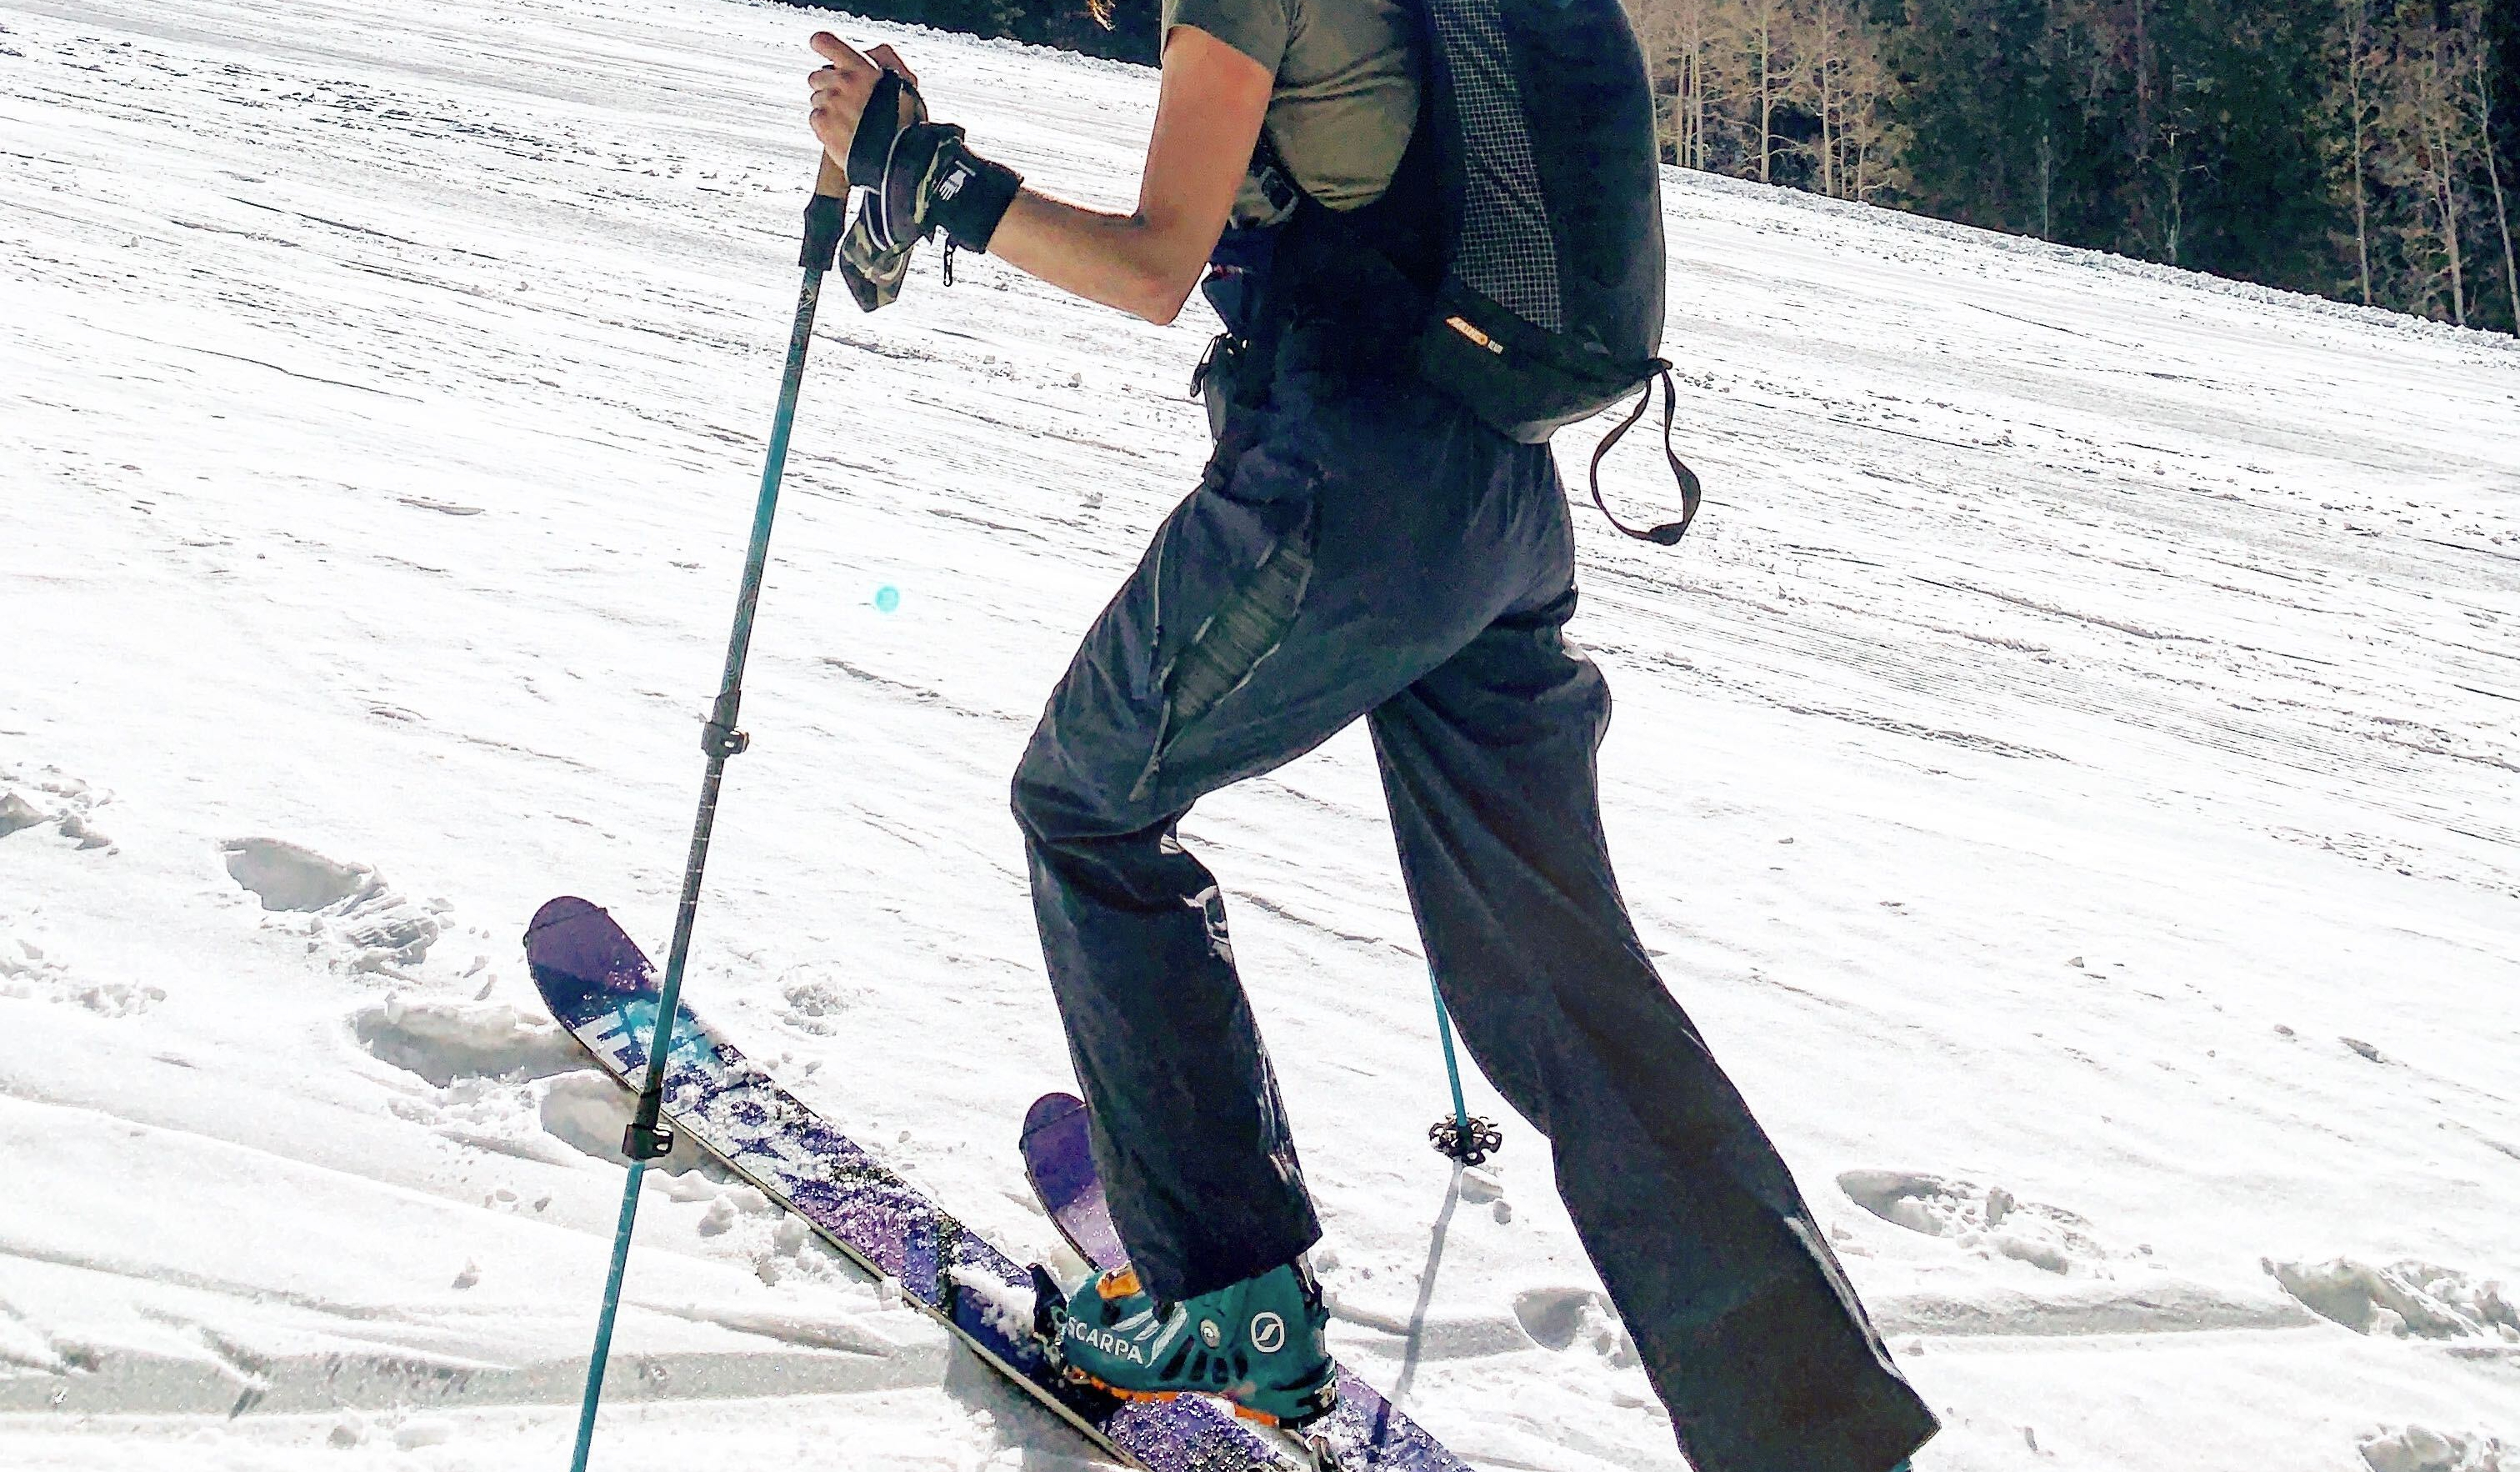 ski touring up a ski resort with uninsulated pants